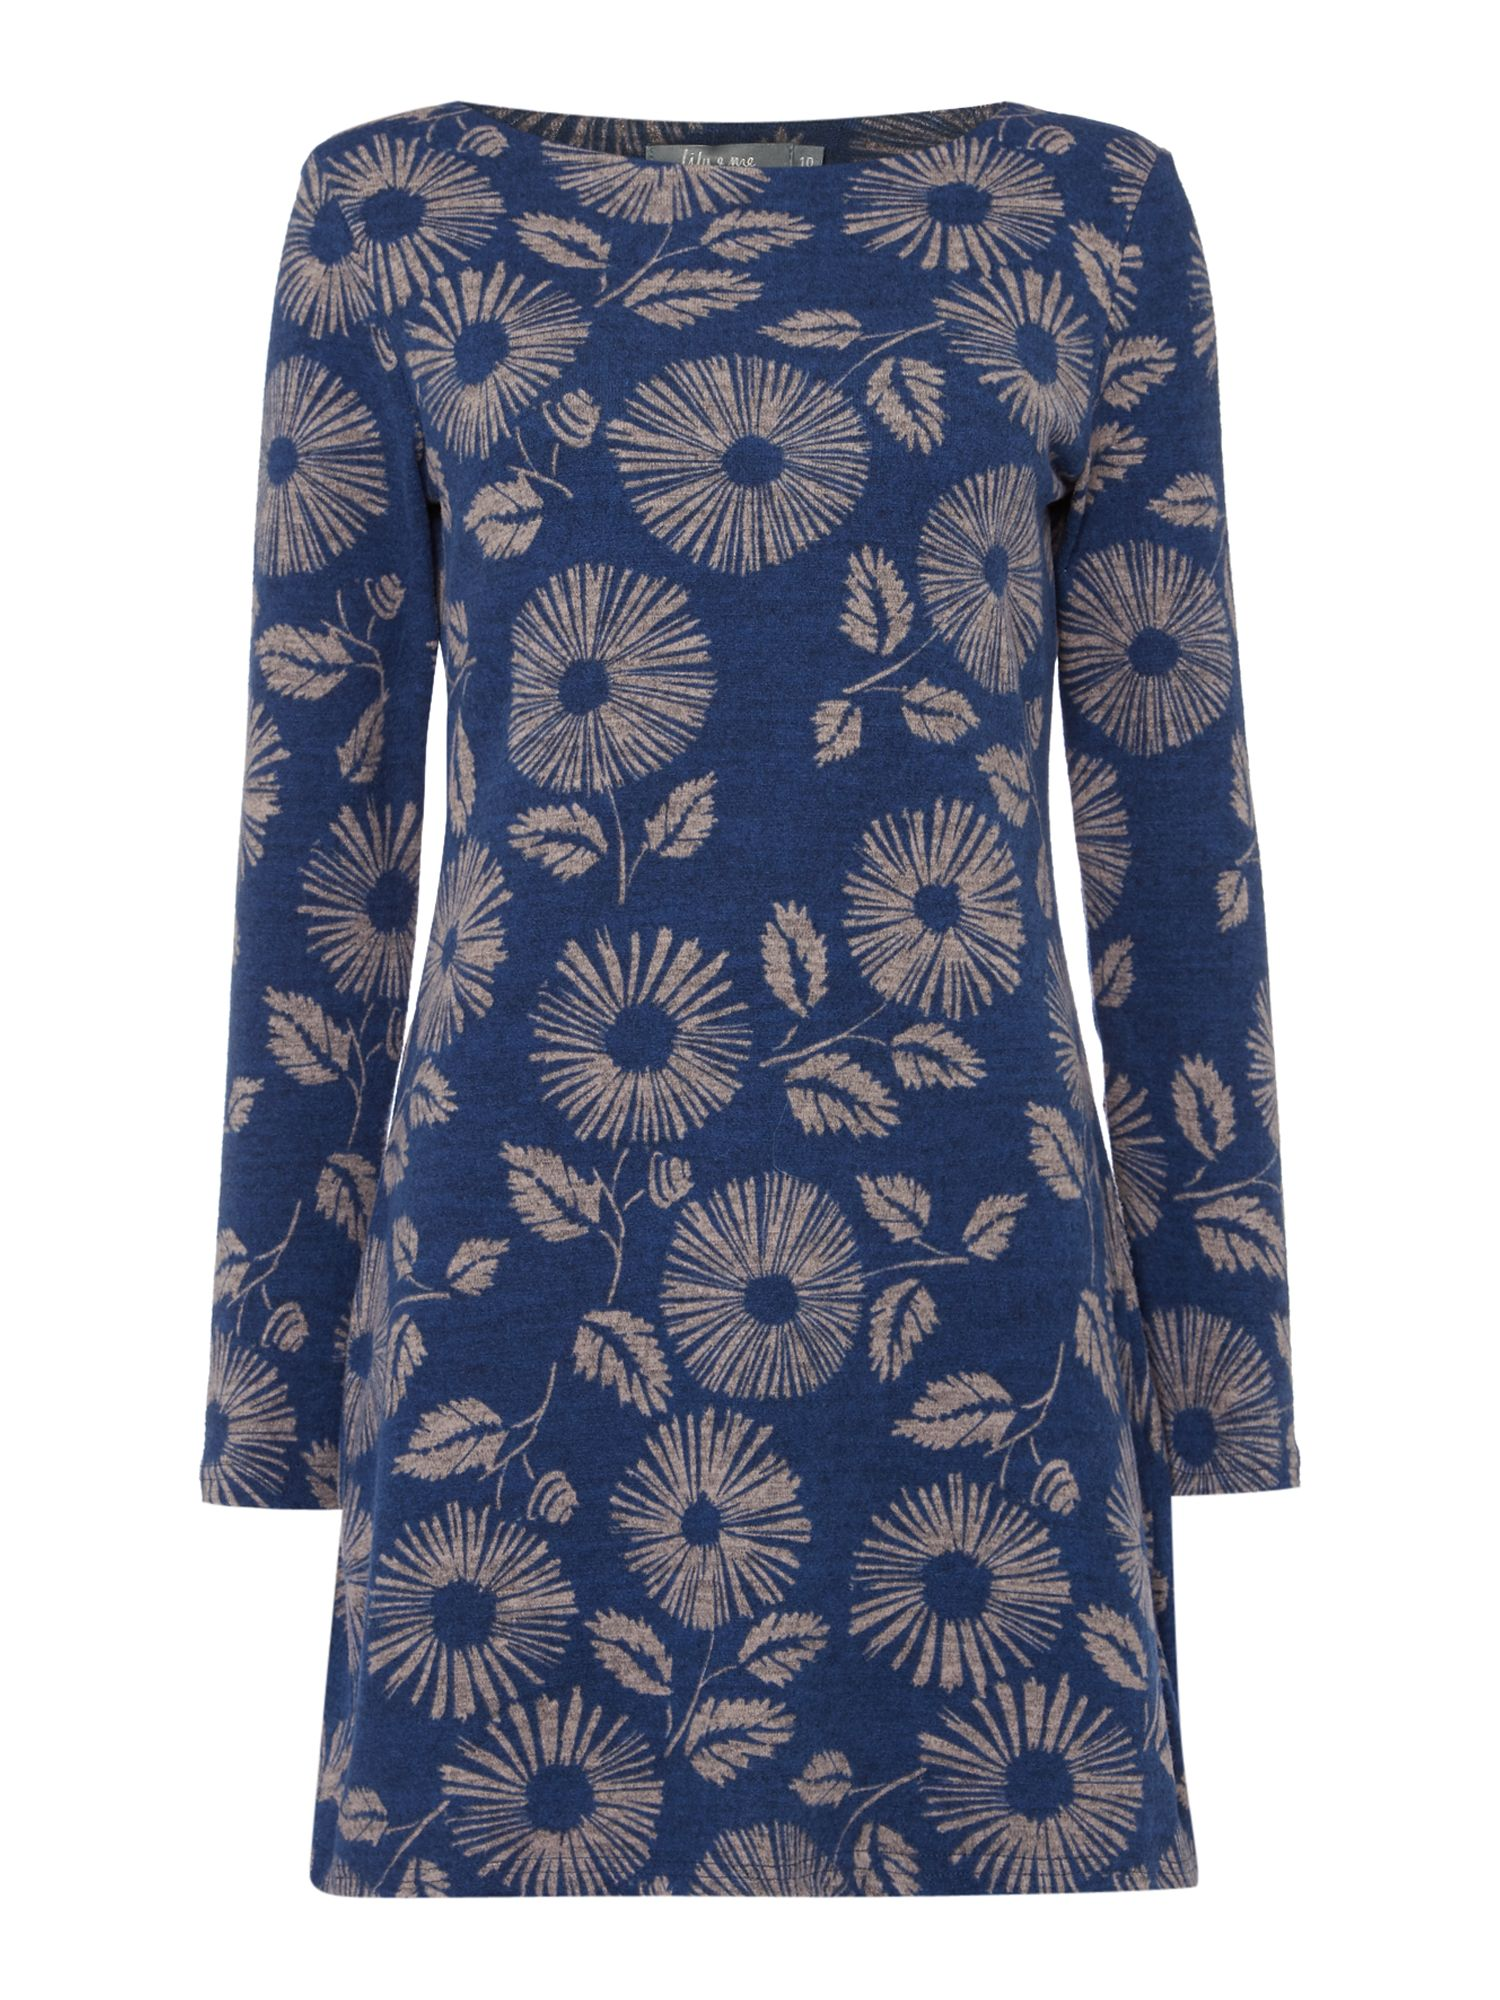 LILY & ME LILY & ME Angela Daisy Print Tunic Dress, Blue